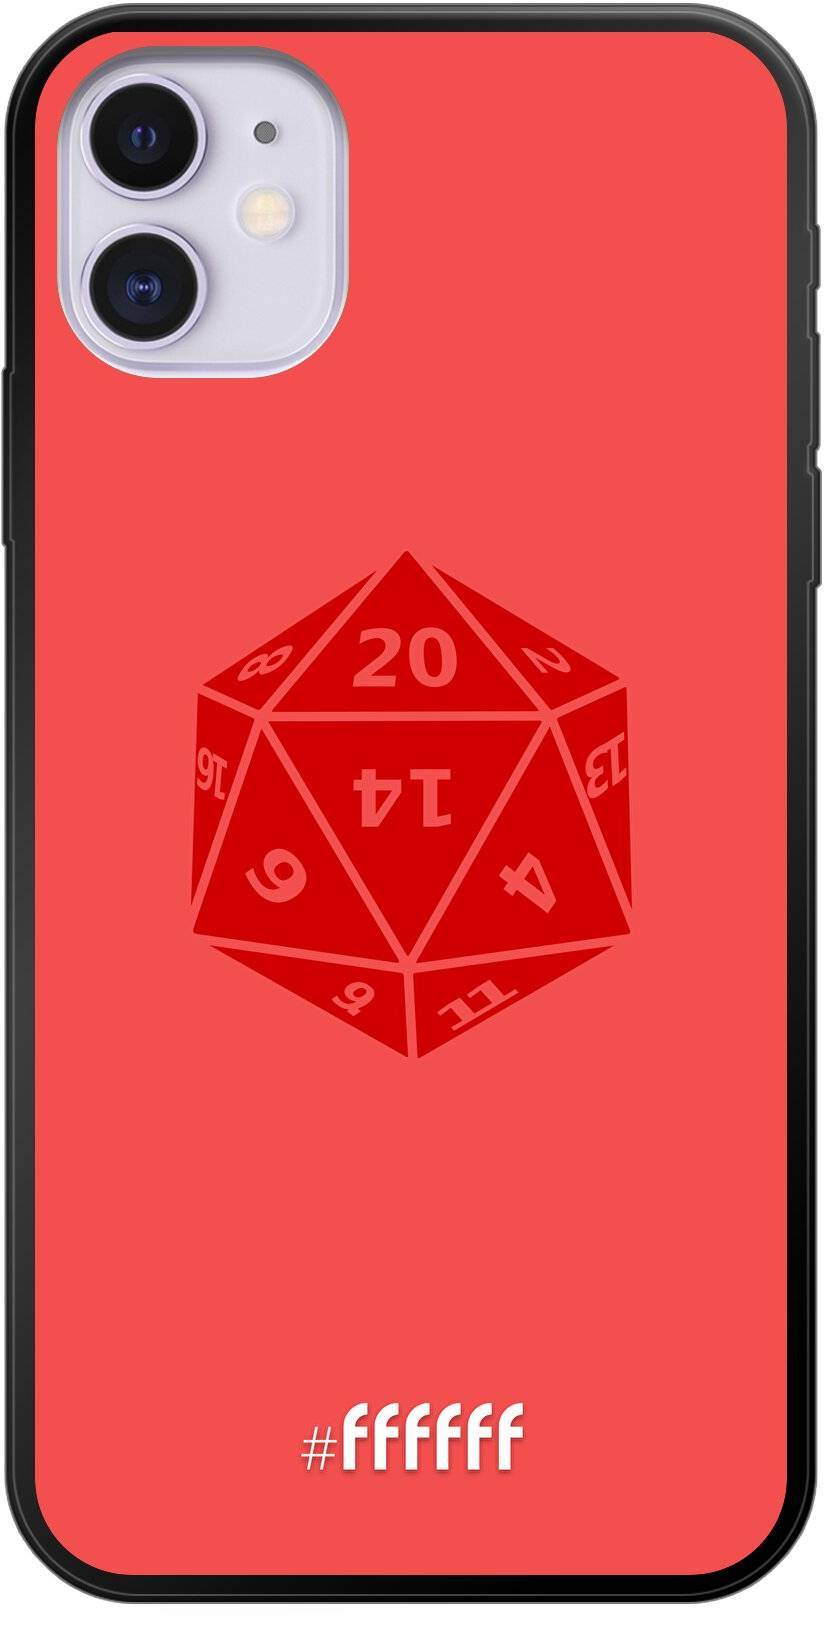 D20 - Red iPhone 11